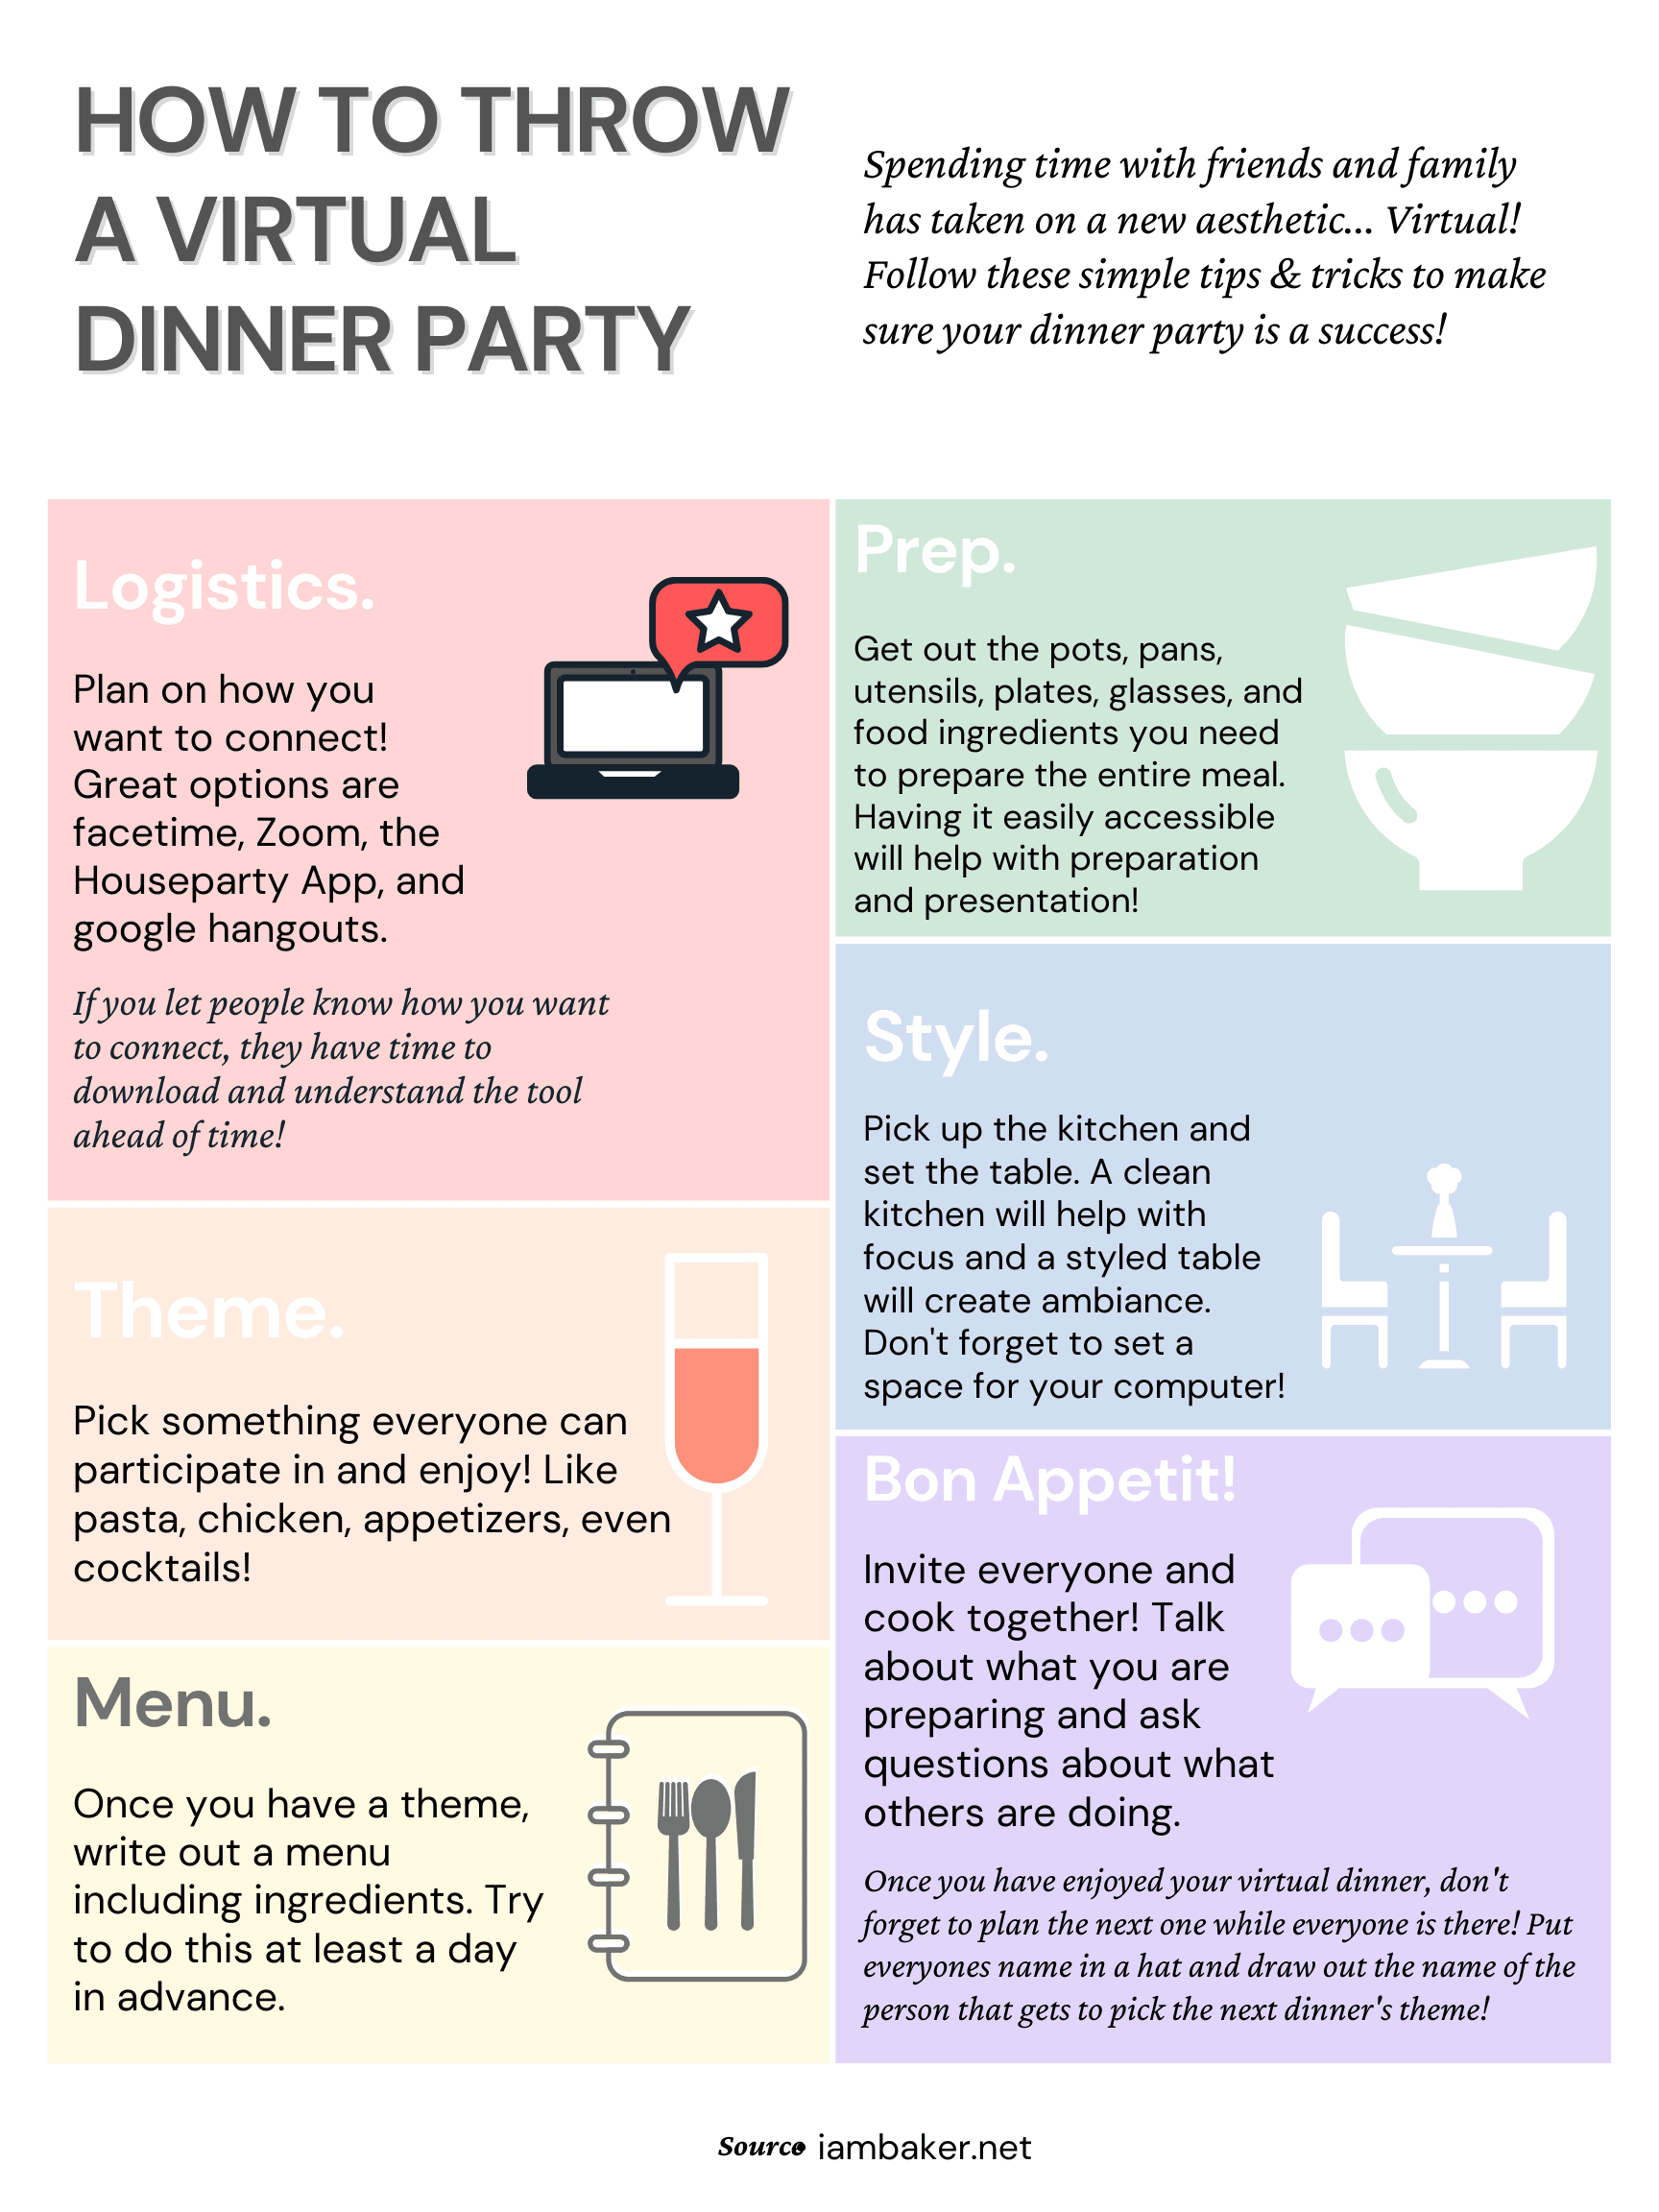 How to Throw a Virtual Dinner Party